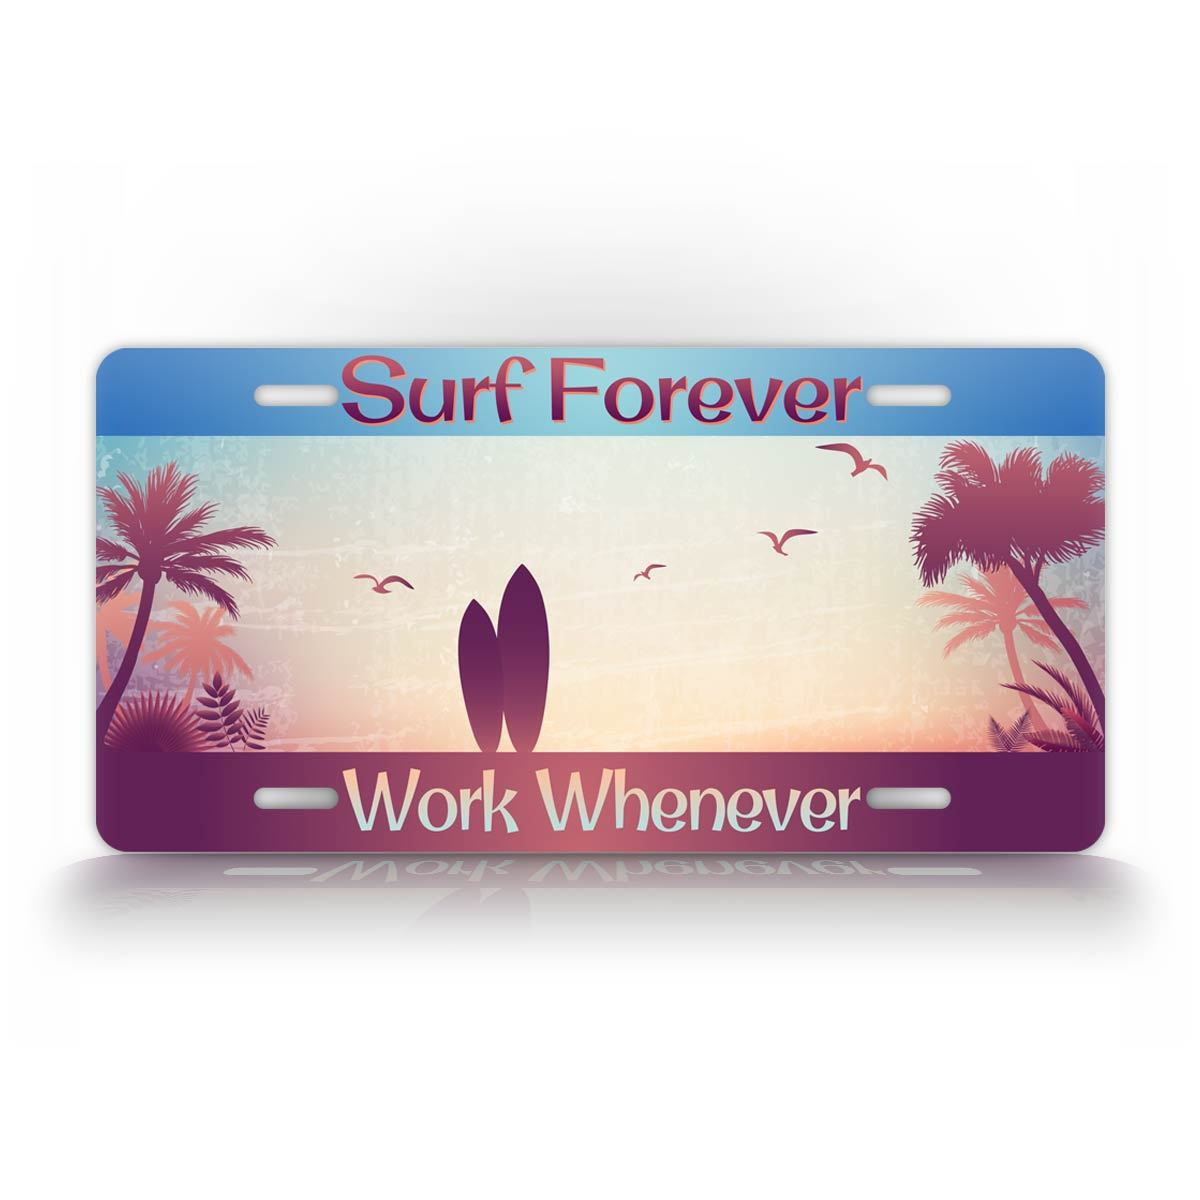 Surf Forever Work When Ever Surfing Auto Tag Surfboard Sunset License Plate